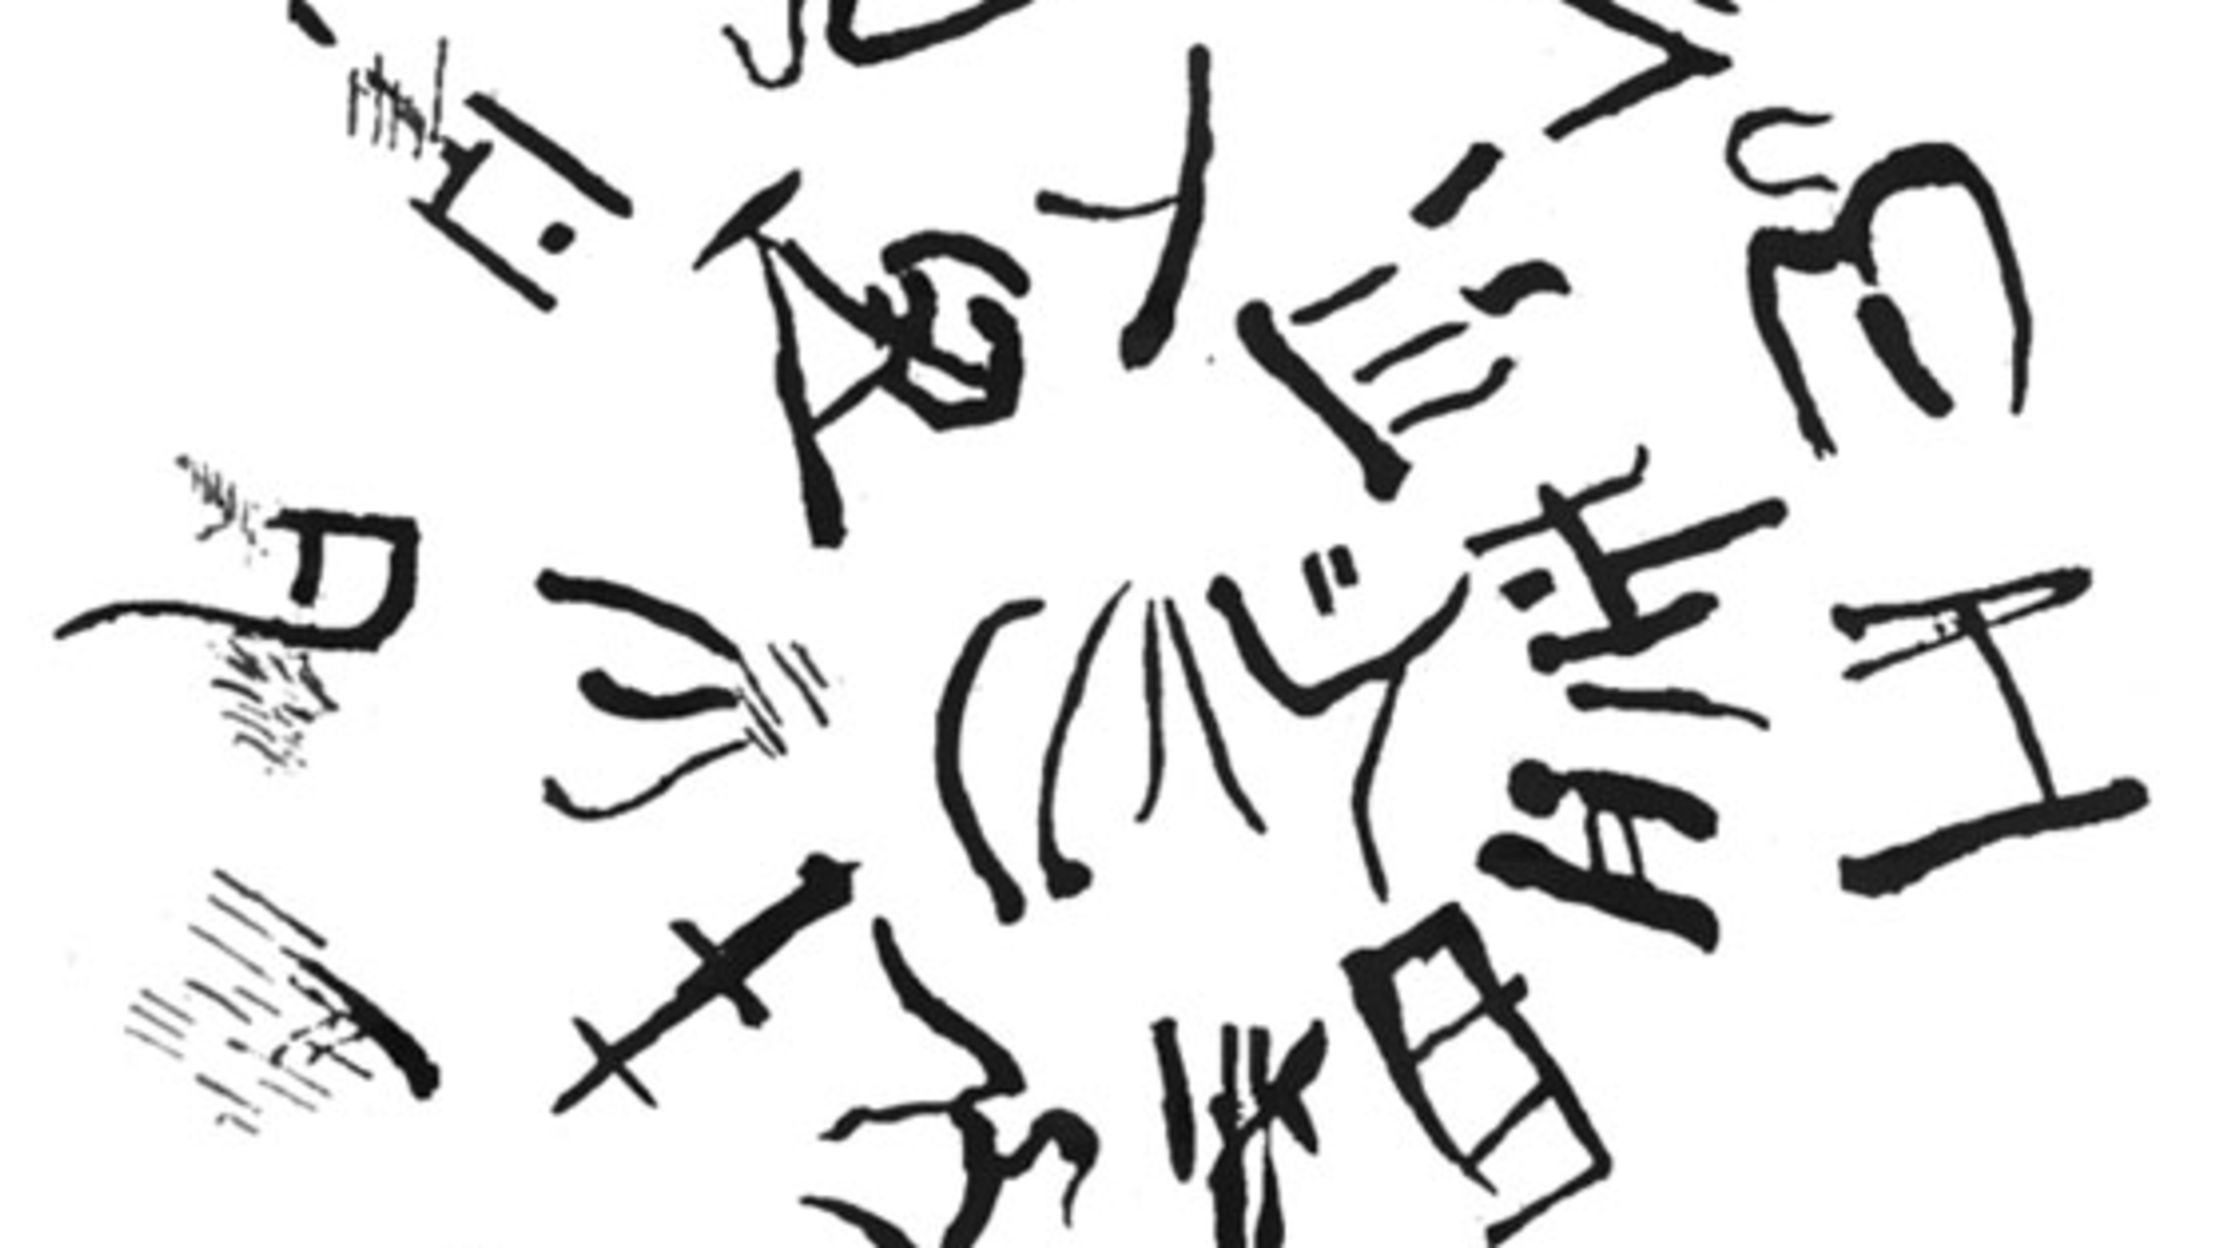 8 Ancient Writing Systems That Haven't Been Deciphered Yet